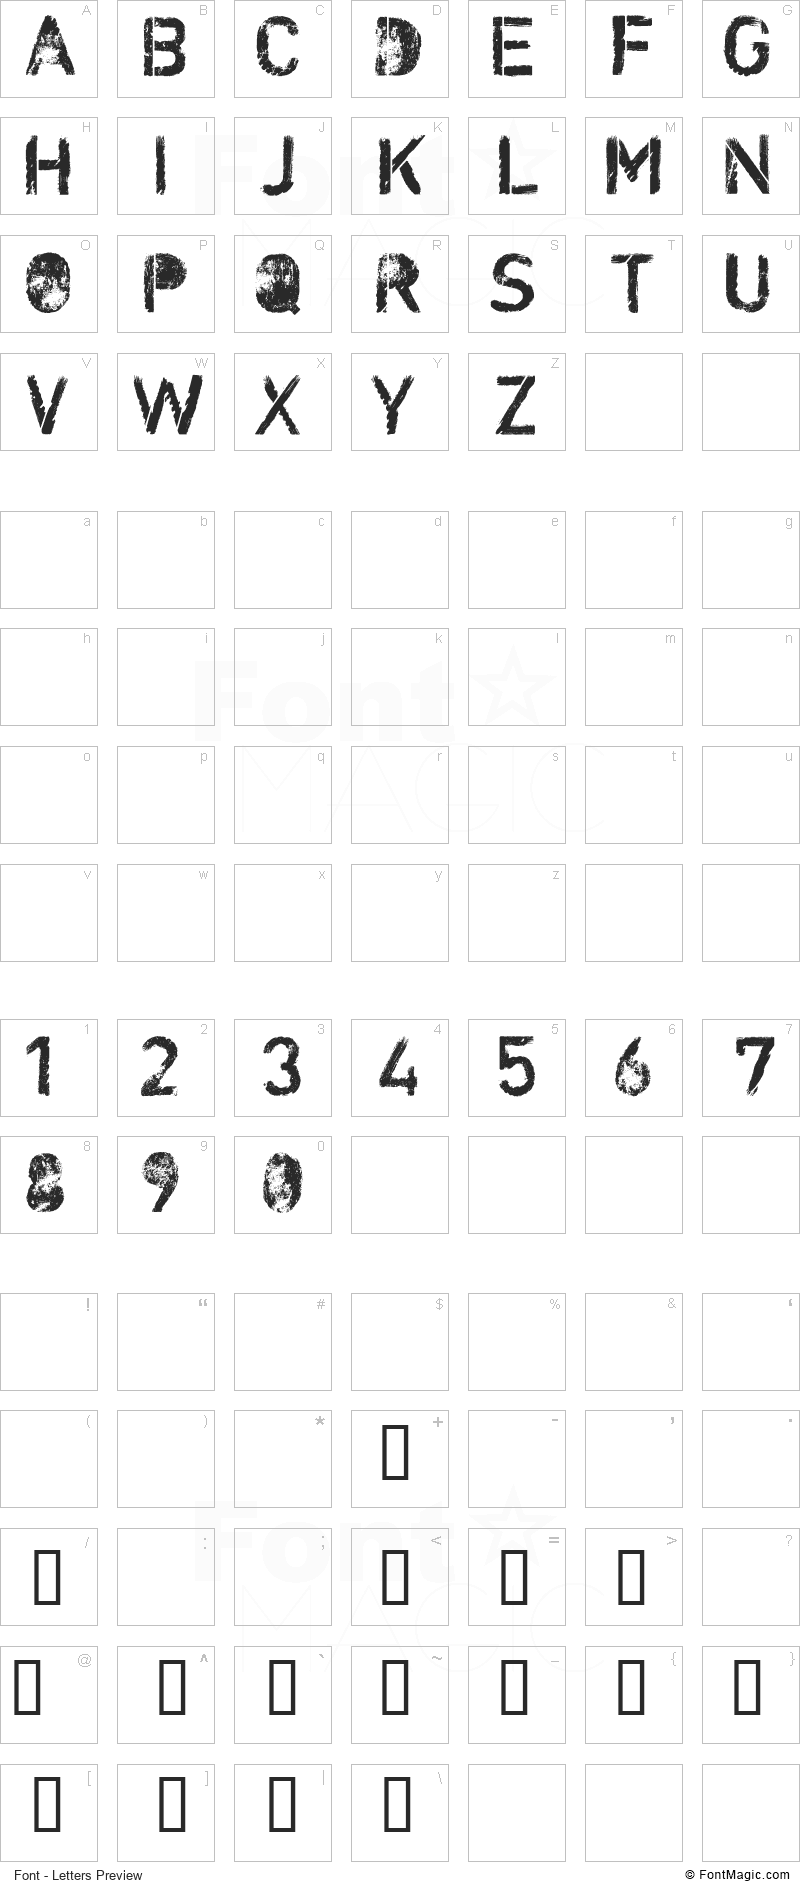 CF Nuclear War Font - All Latters Preview Chart